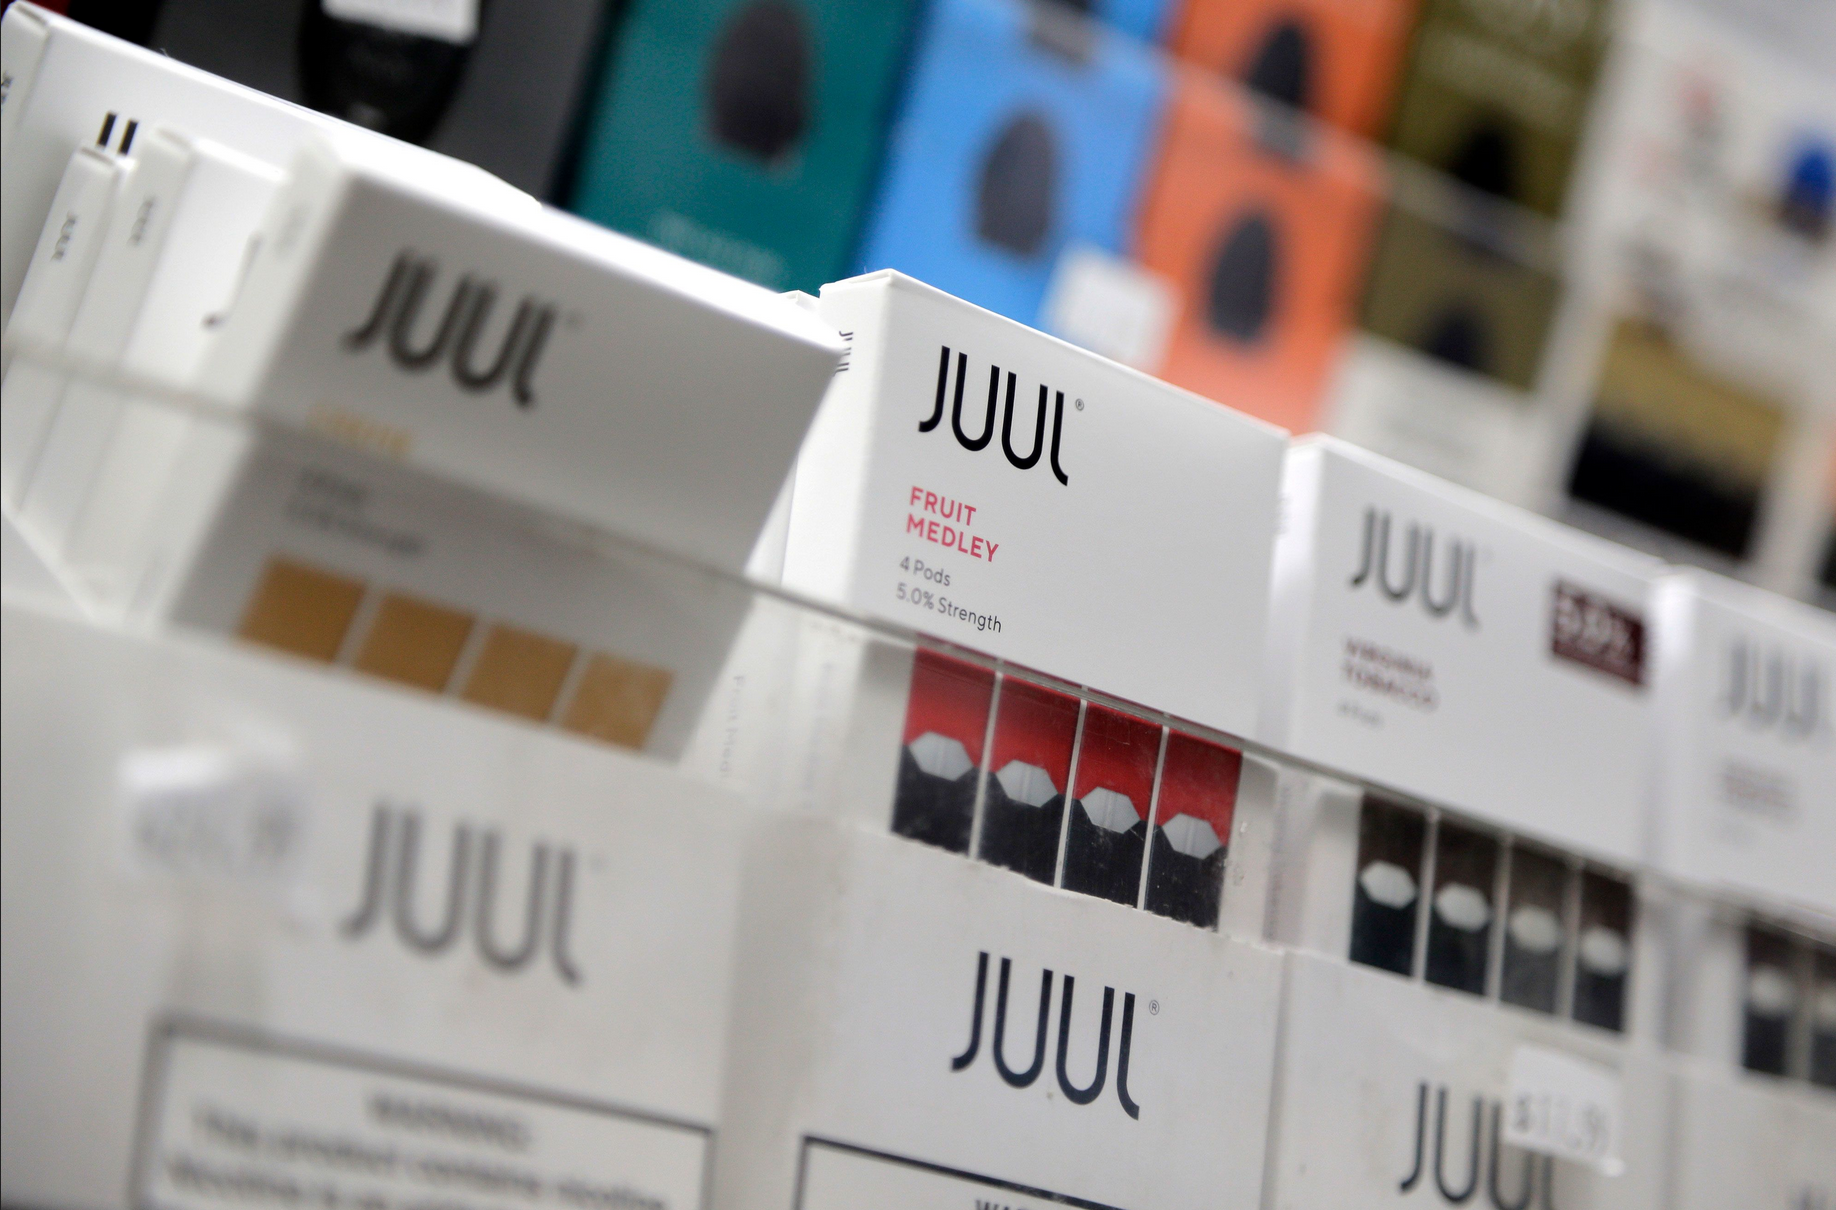 City looks to outlaw Juul sales - Palo Alto Daily Post